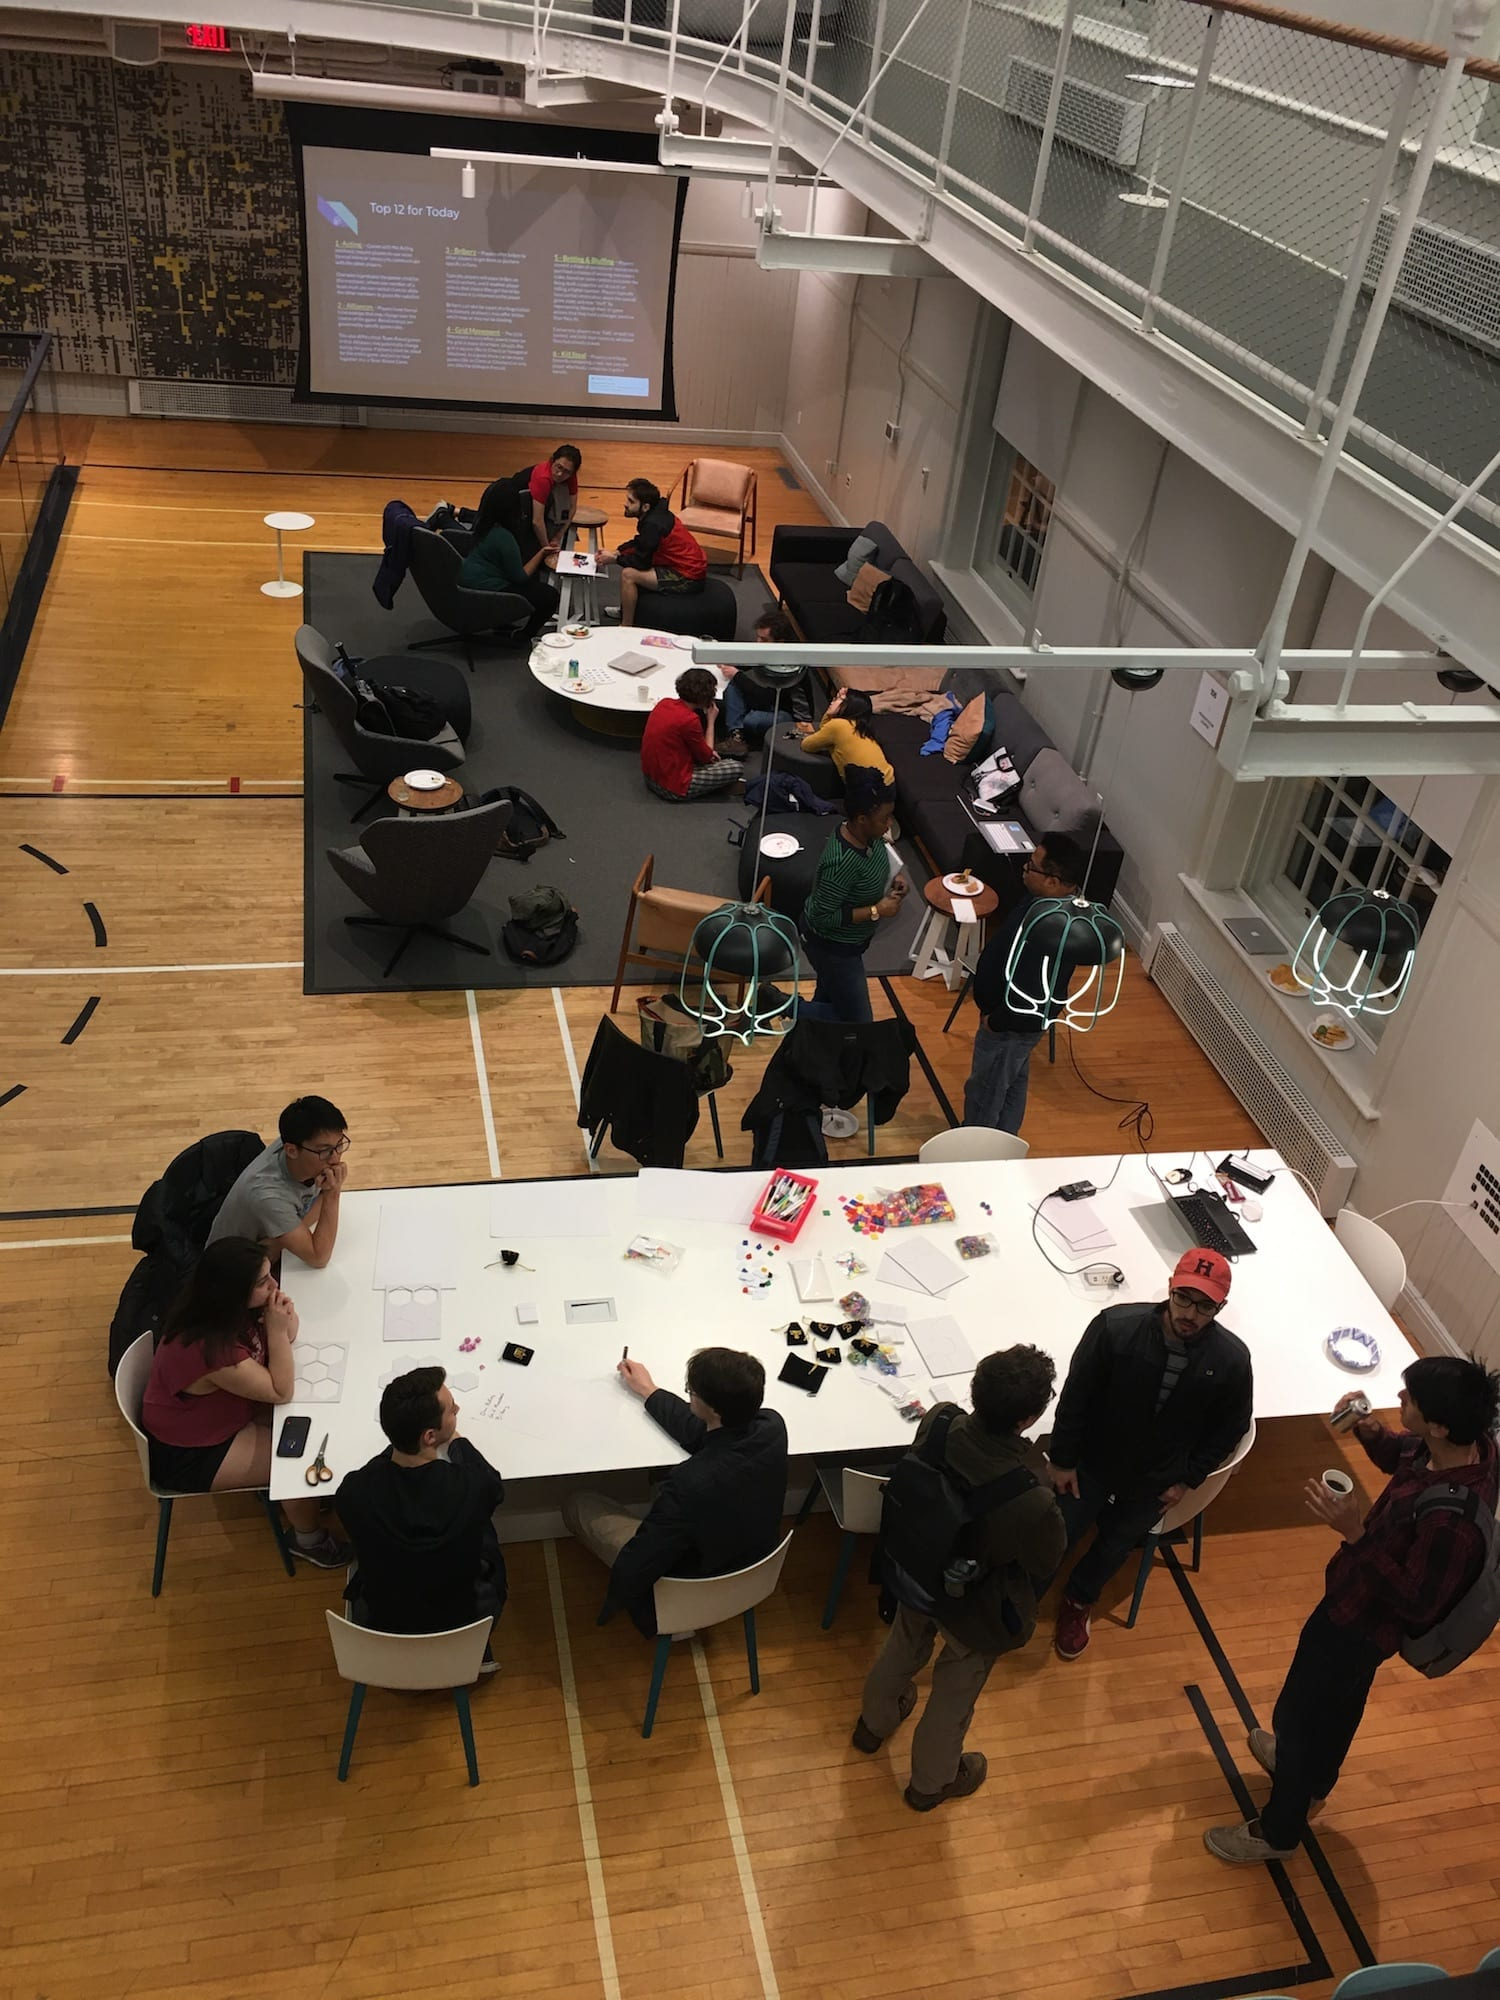 A view from above of students prototyping their original games in the VCAM.